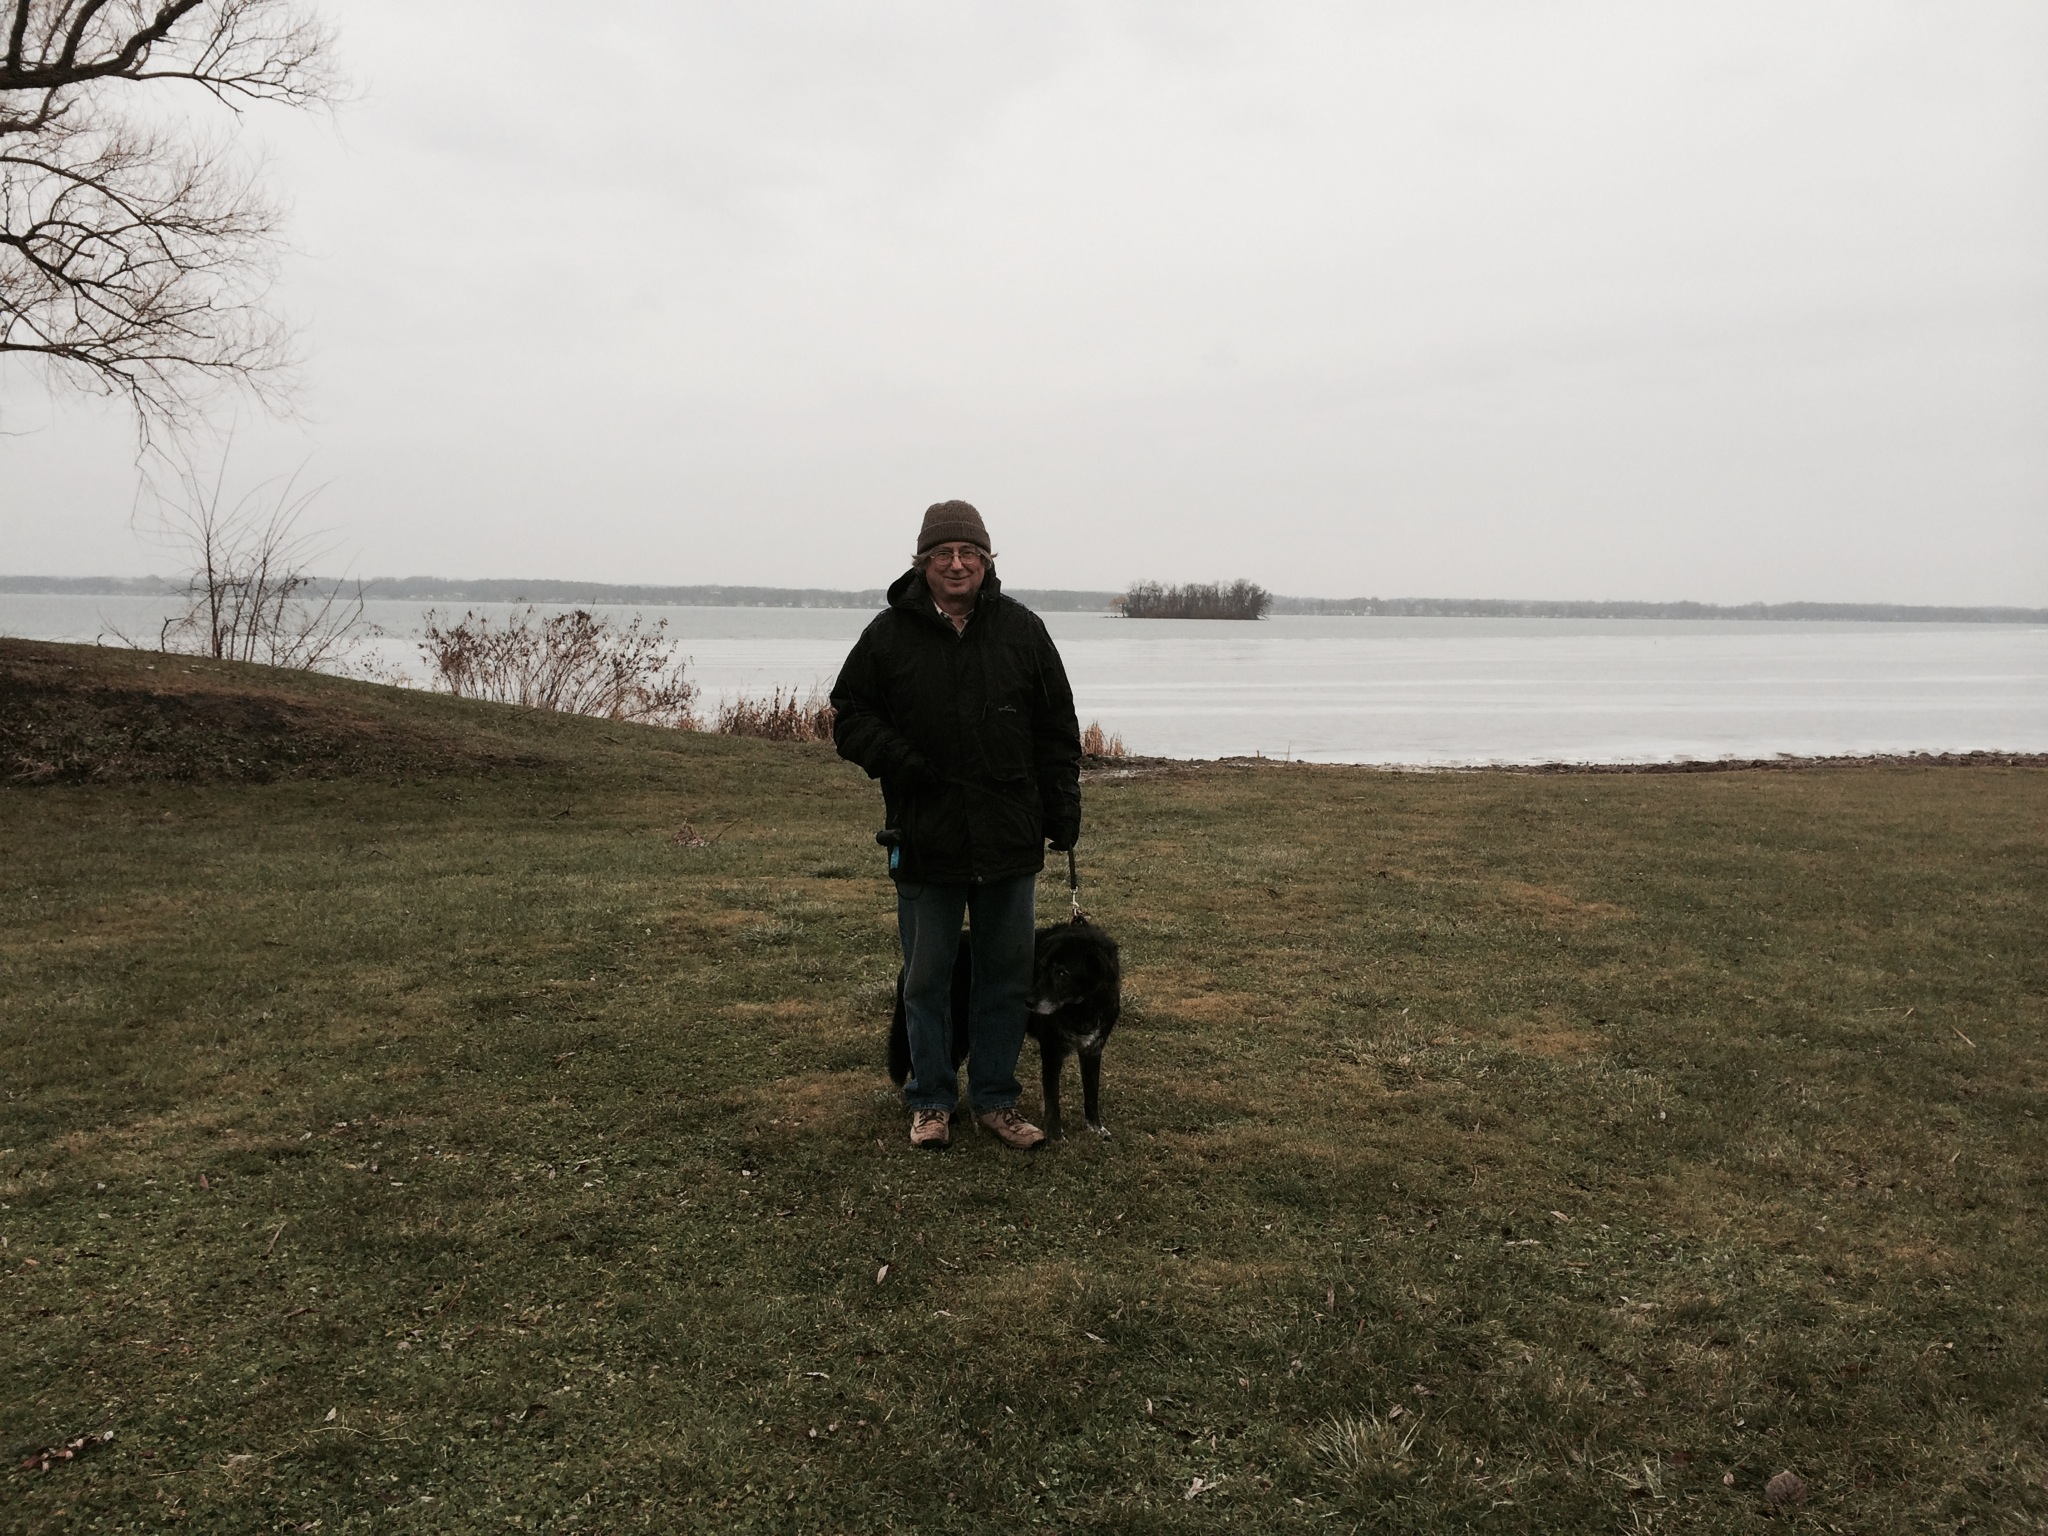 Ed and Alice at the Cayuga Lake Shore with Frontenac Island in the background